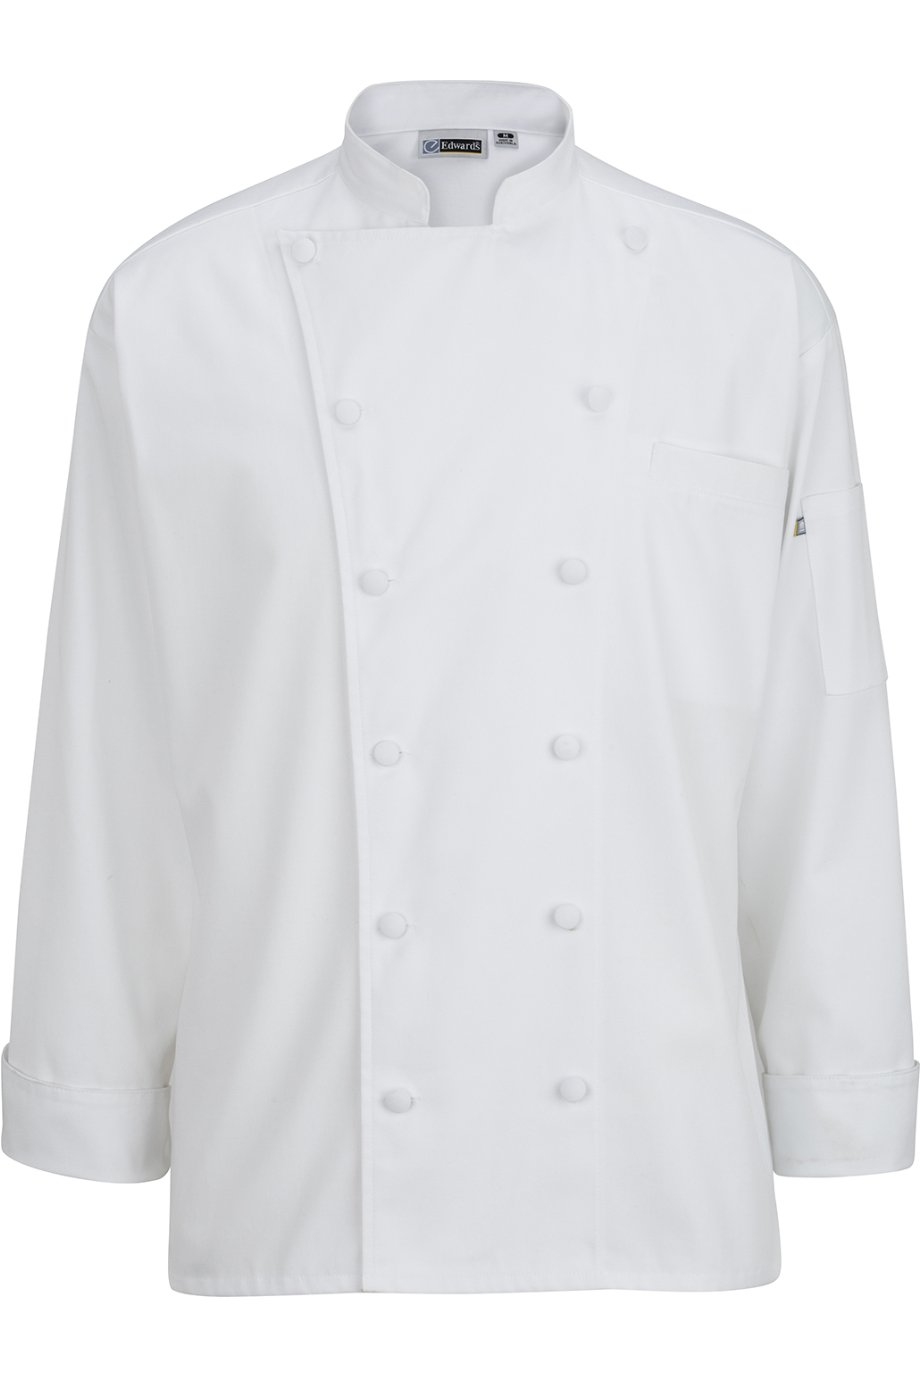 Edwards 12 Cloth Button Classic Chef Coat, White, XXXX-Large by Edwards